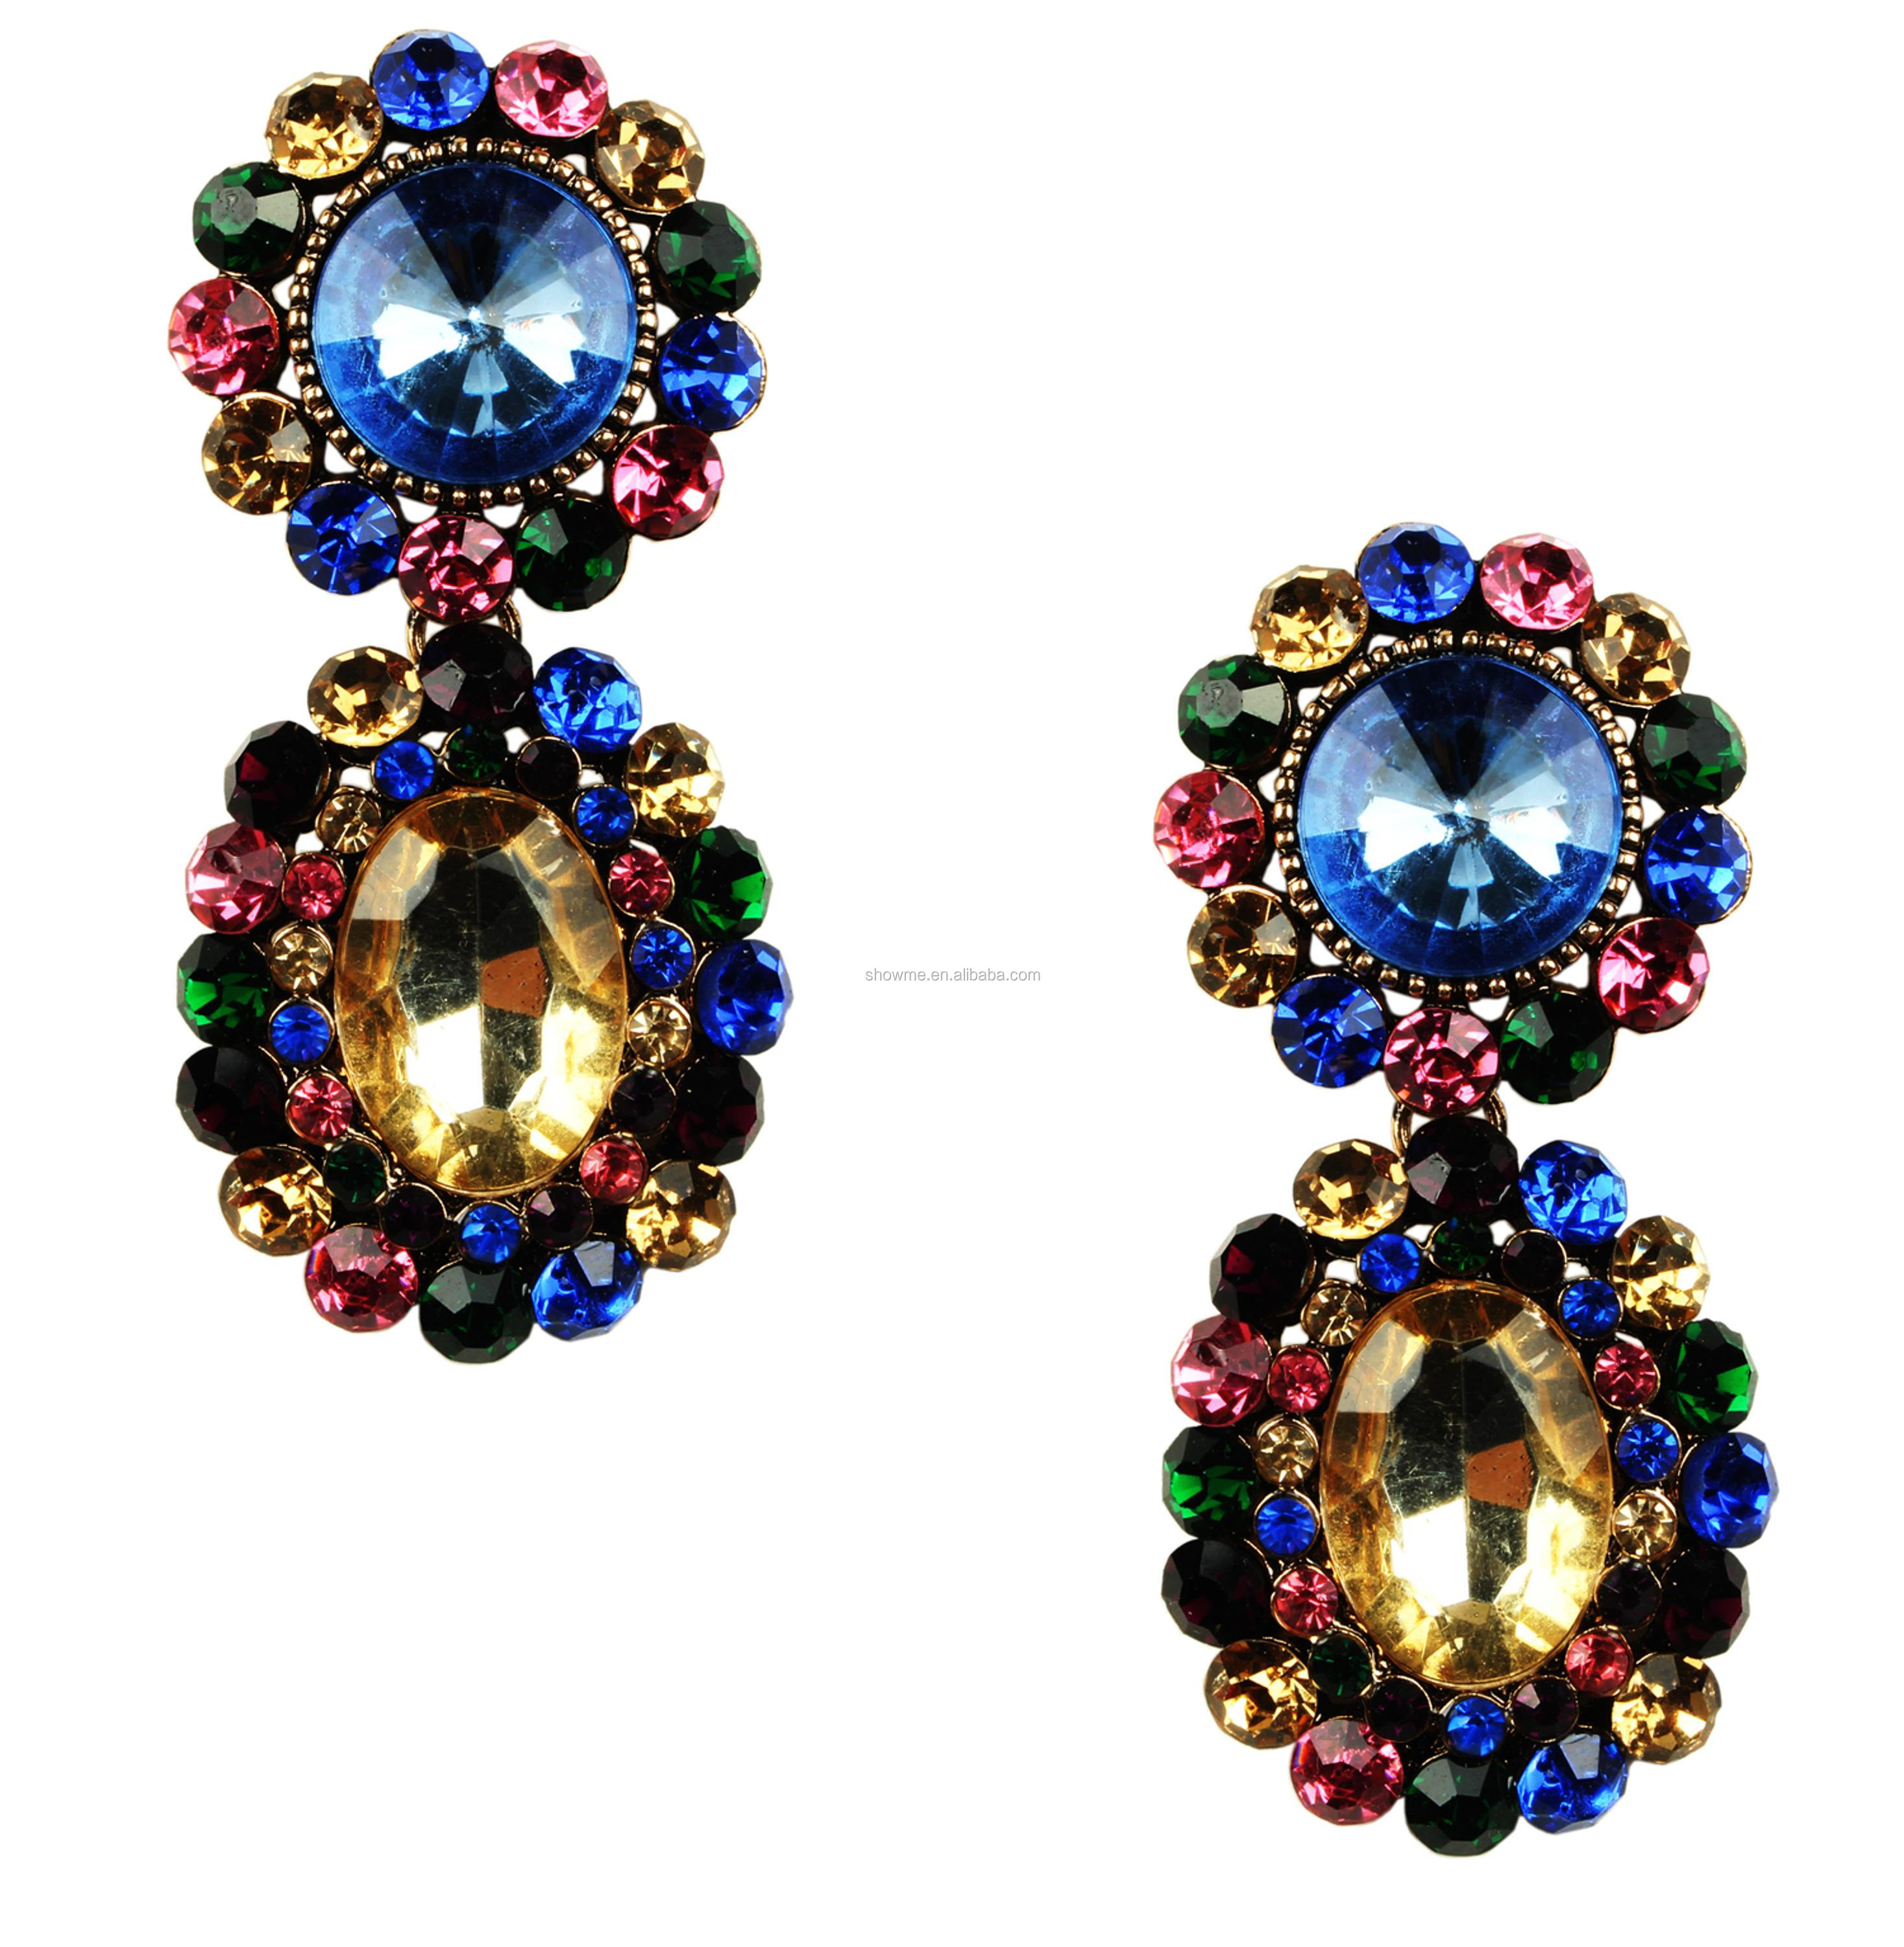 Factory own design colored drop earrings, costume colored earrings, color jewelry earring wholesale